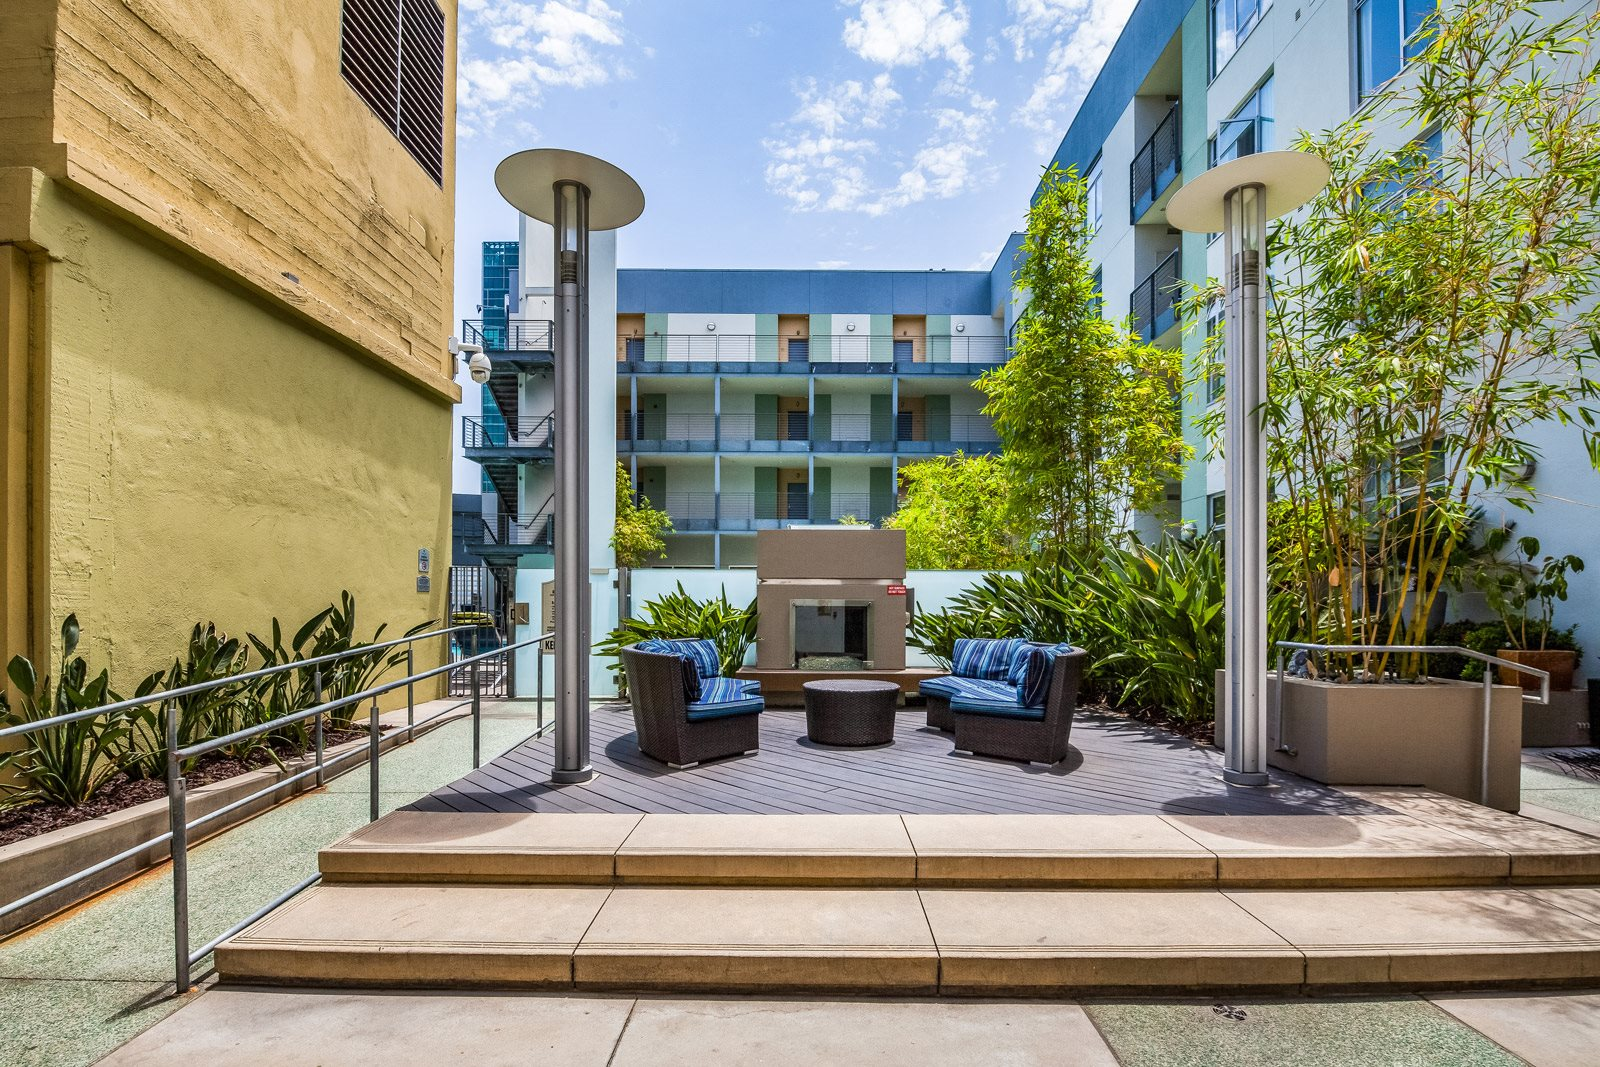 Open Air Courtyard at Sunset and Vine, Los Angeles, California